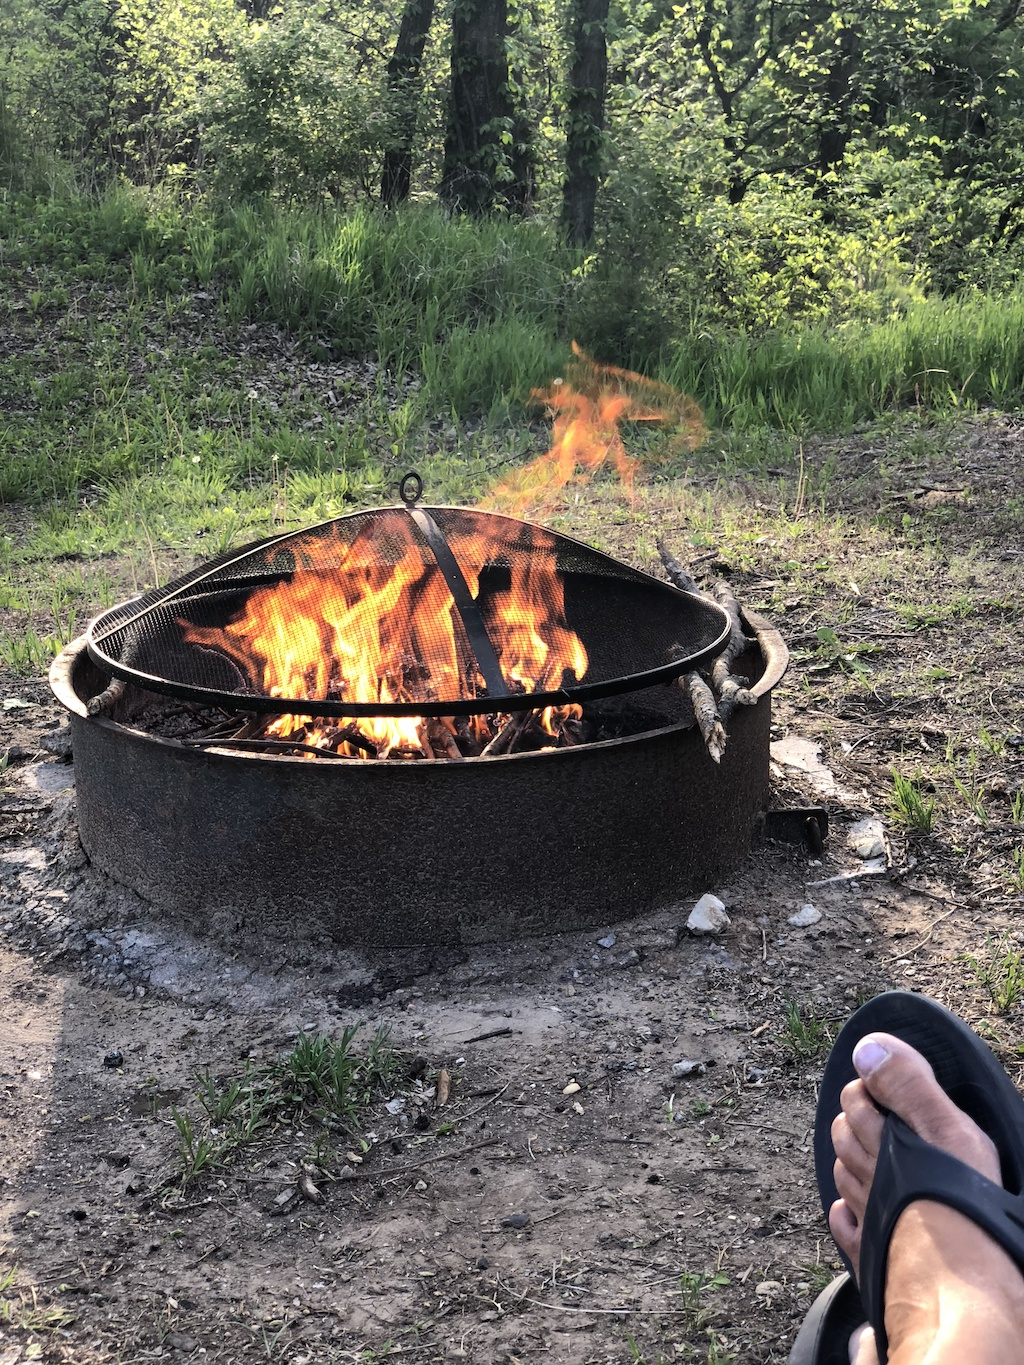 Check out our 6 ways to save money on campsite rentals, so you can sleep under the stars for less. Enjoying an evening by the campfire.